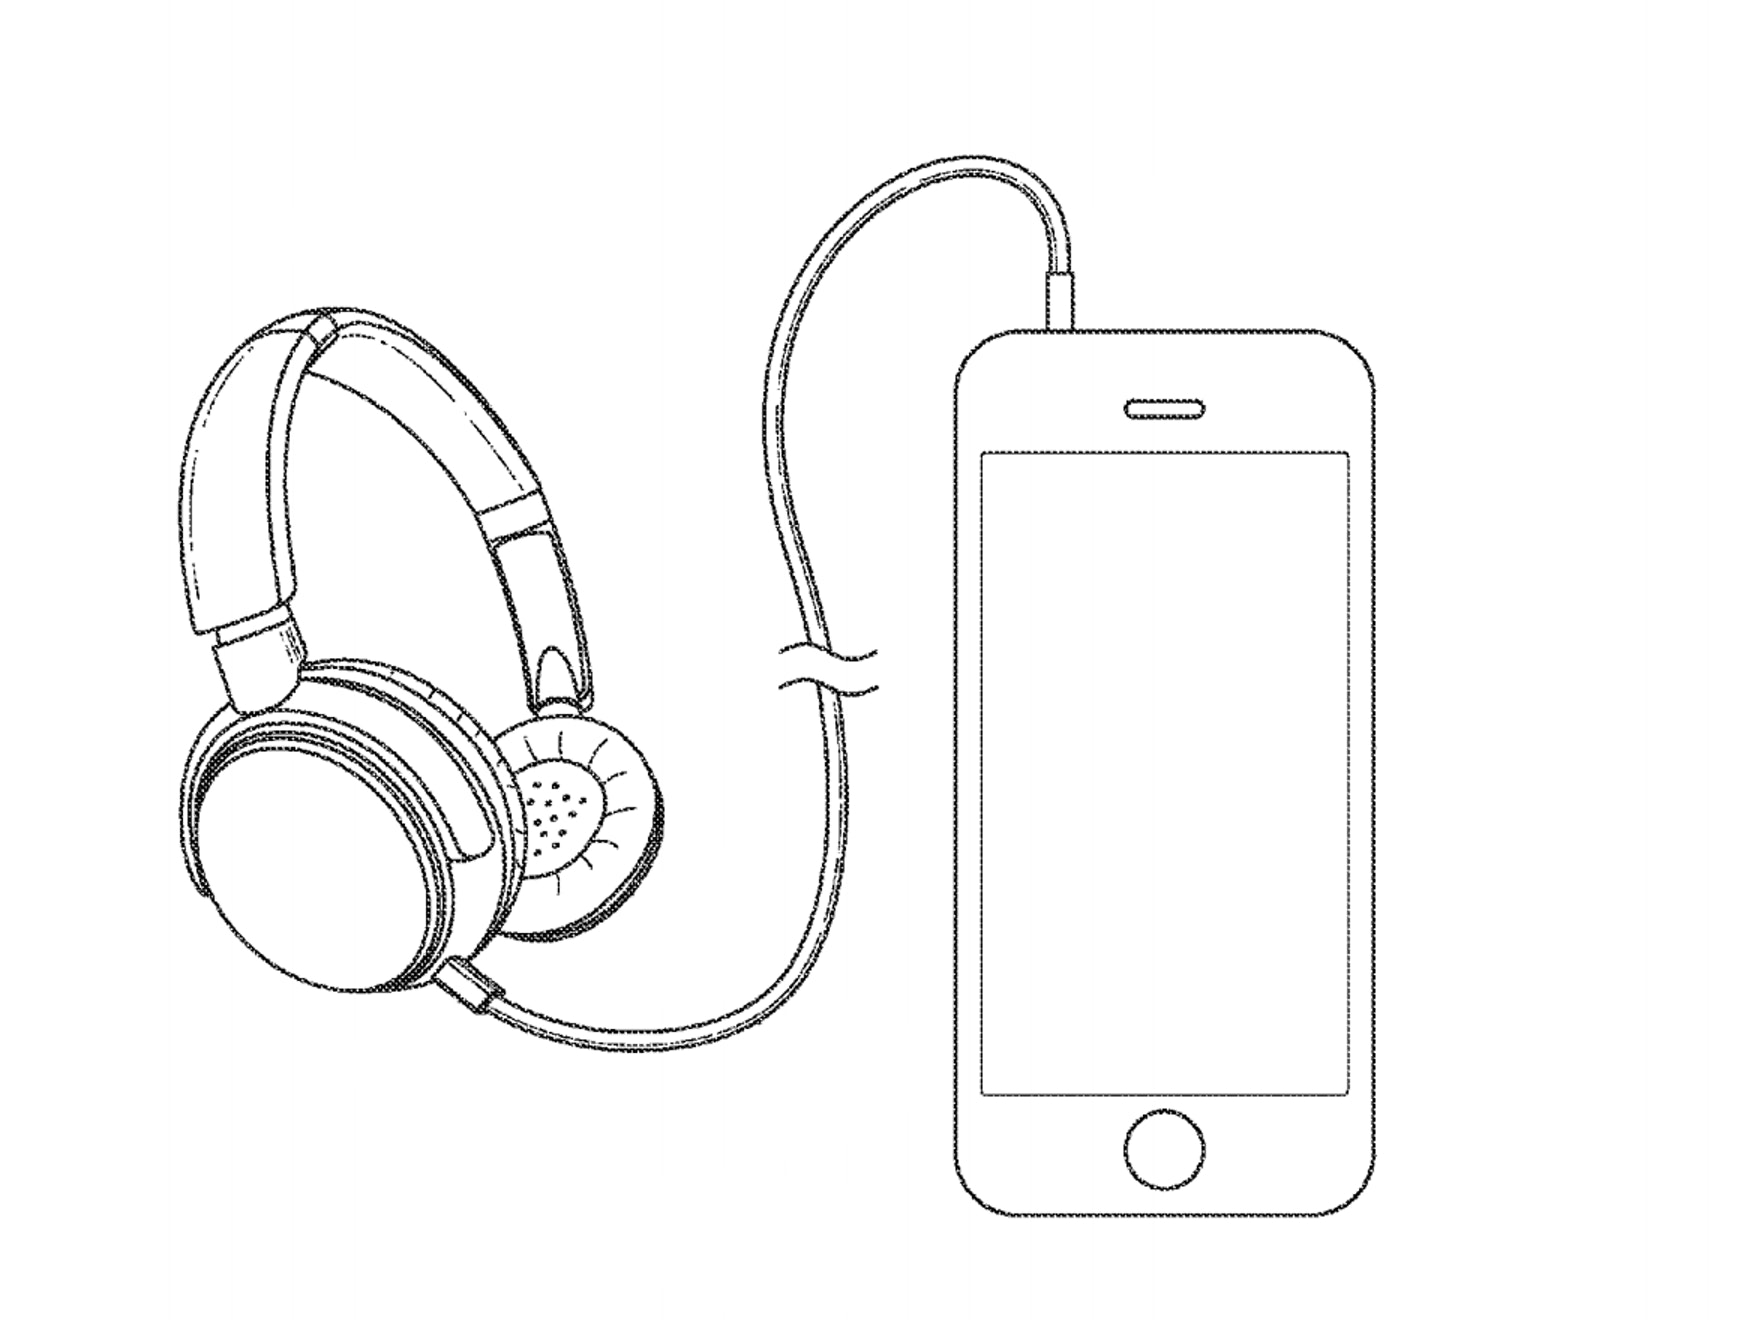 Apple Patent Shows How Much Better an iPhone Without a Headphone Jack May Be